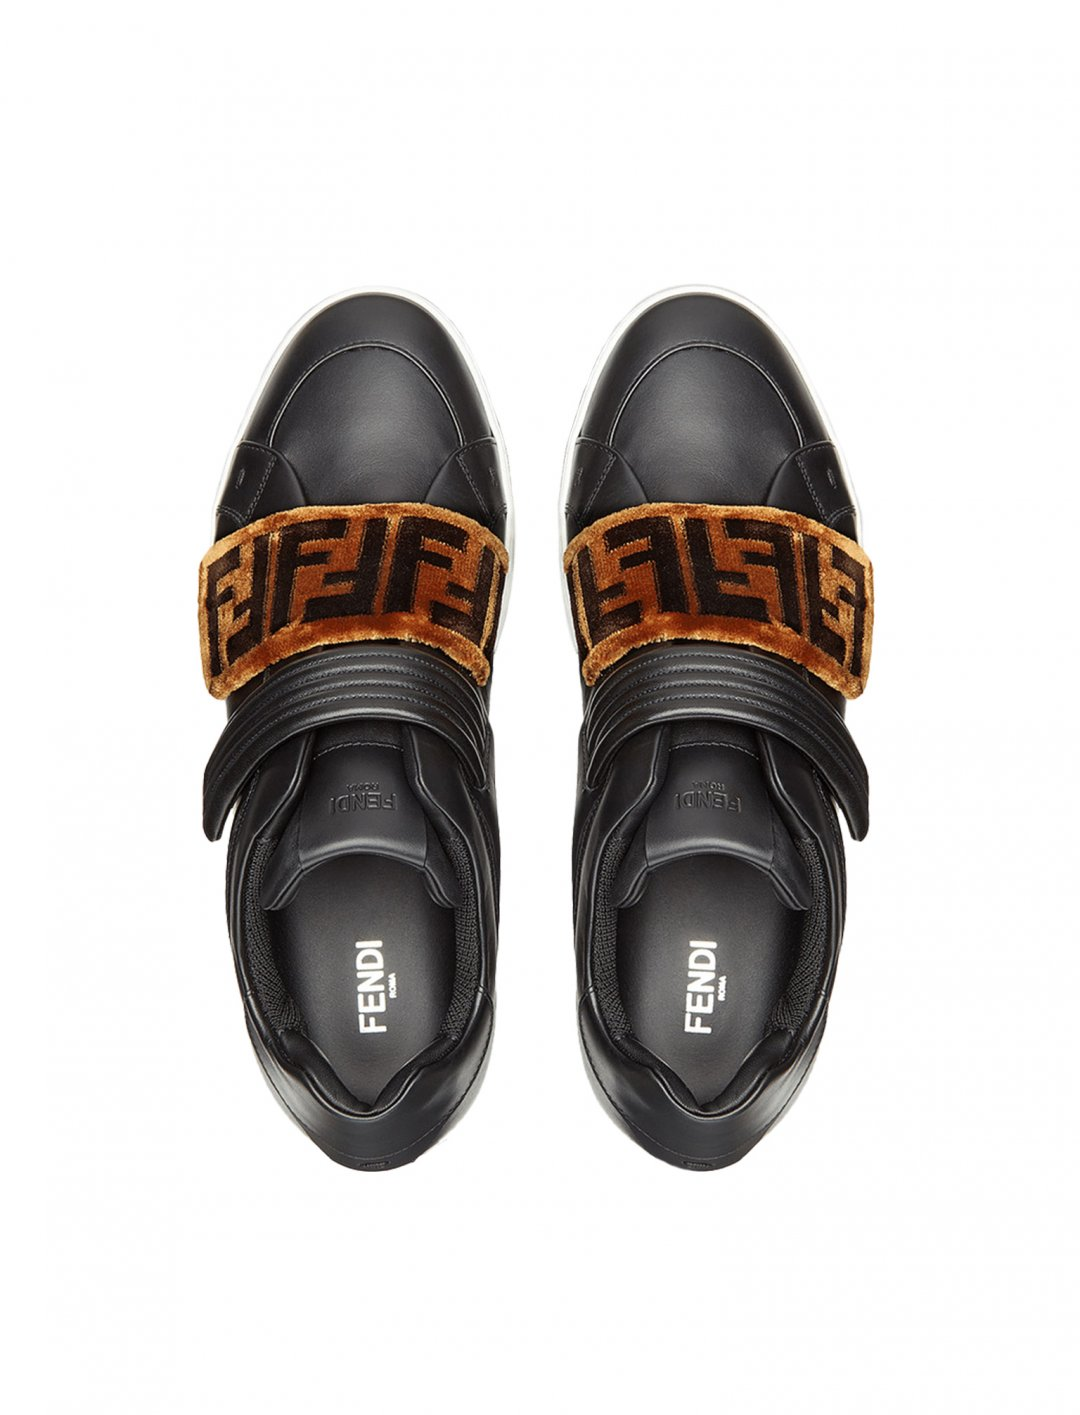 "Lethal Bizzle's Fendi Sneakers {""id"":12,""product_section_id"":1,""name"":""Shoes"",""order"":12} Fendi"